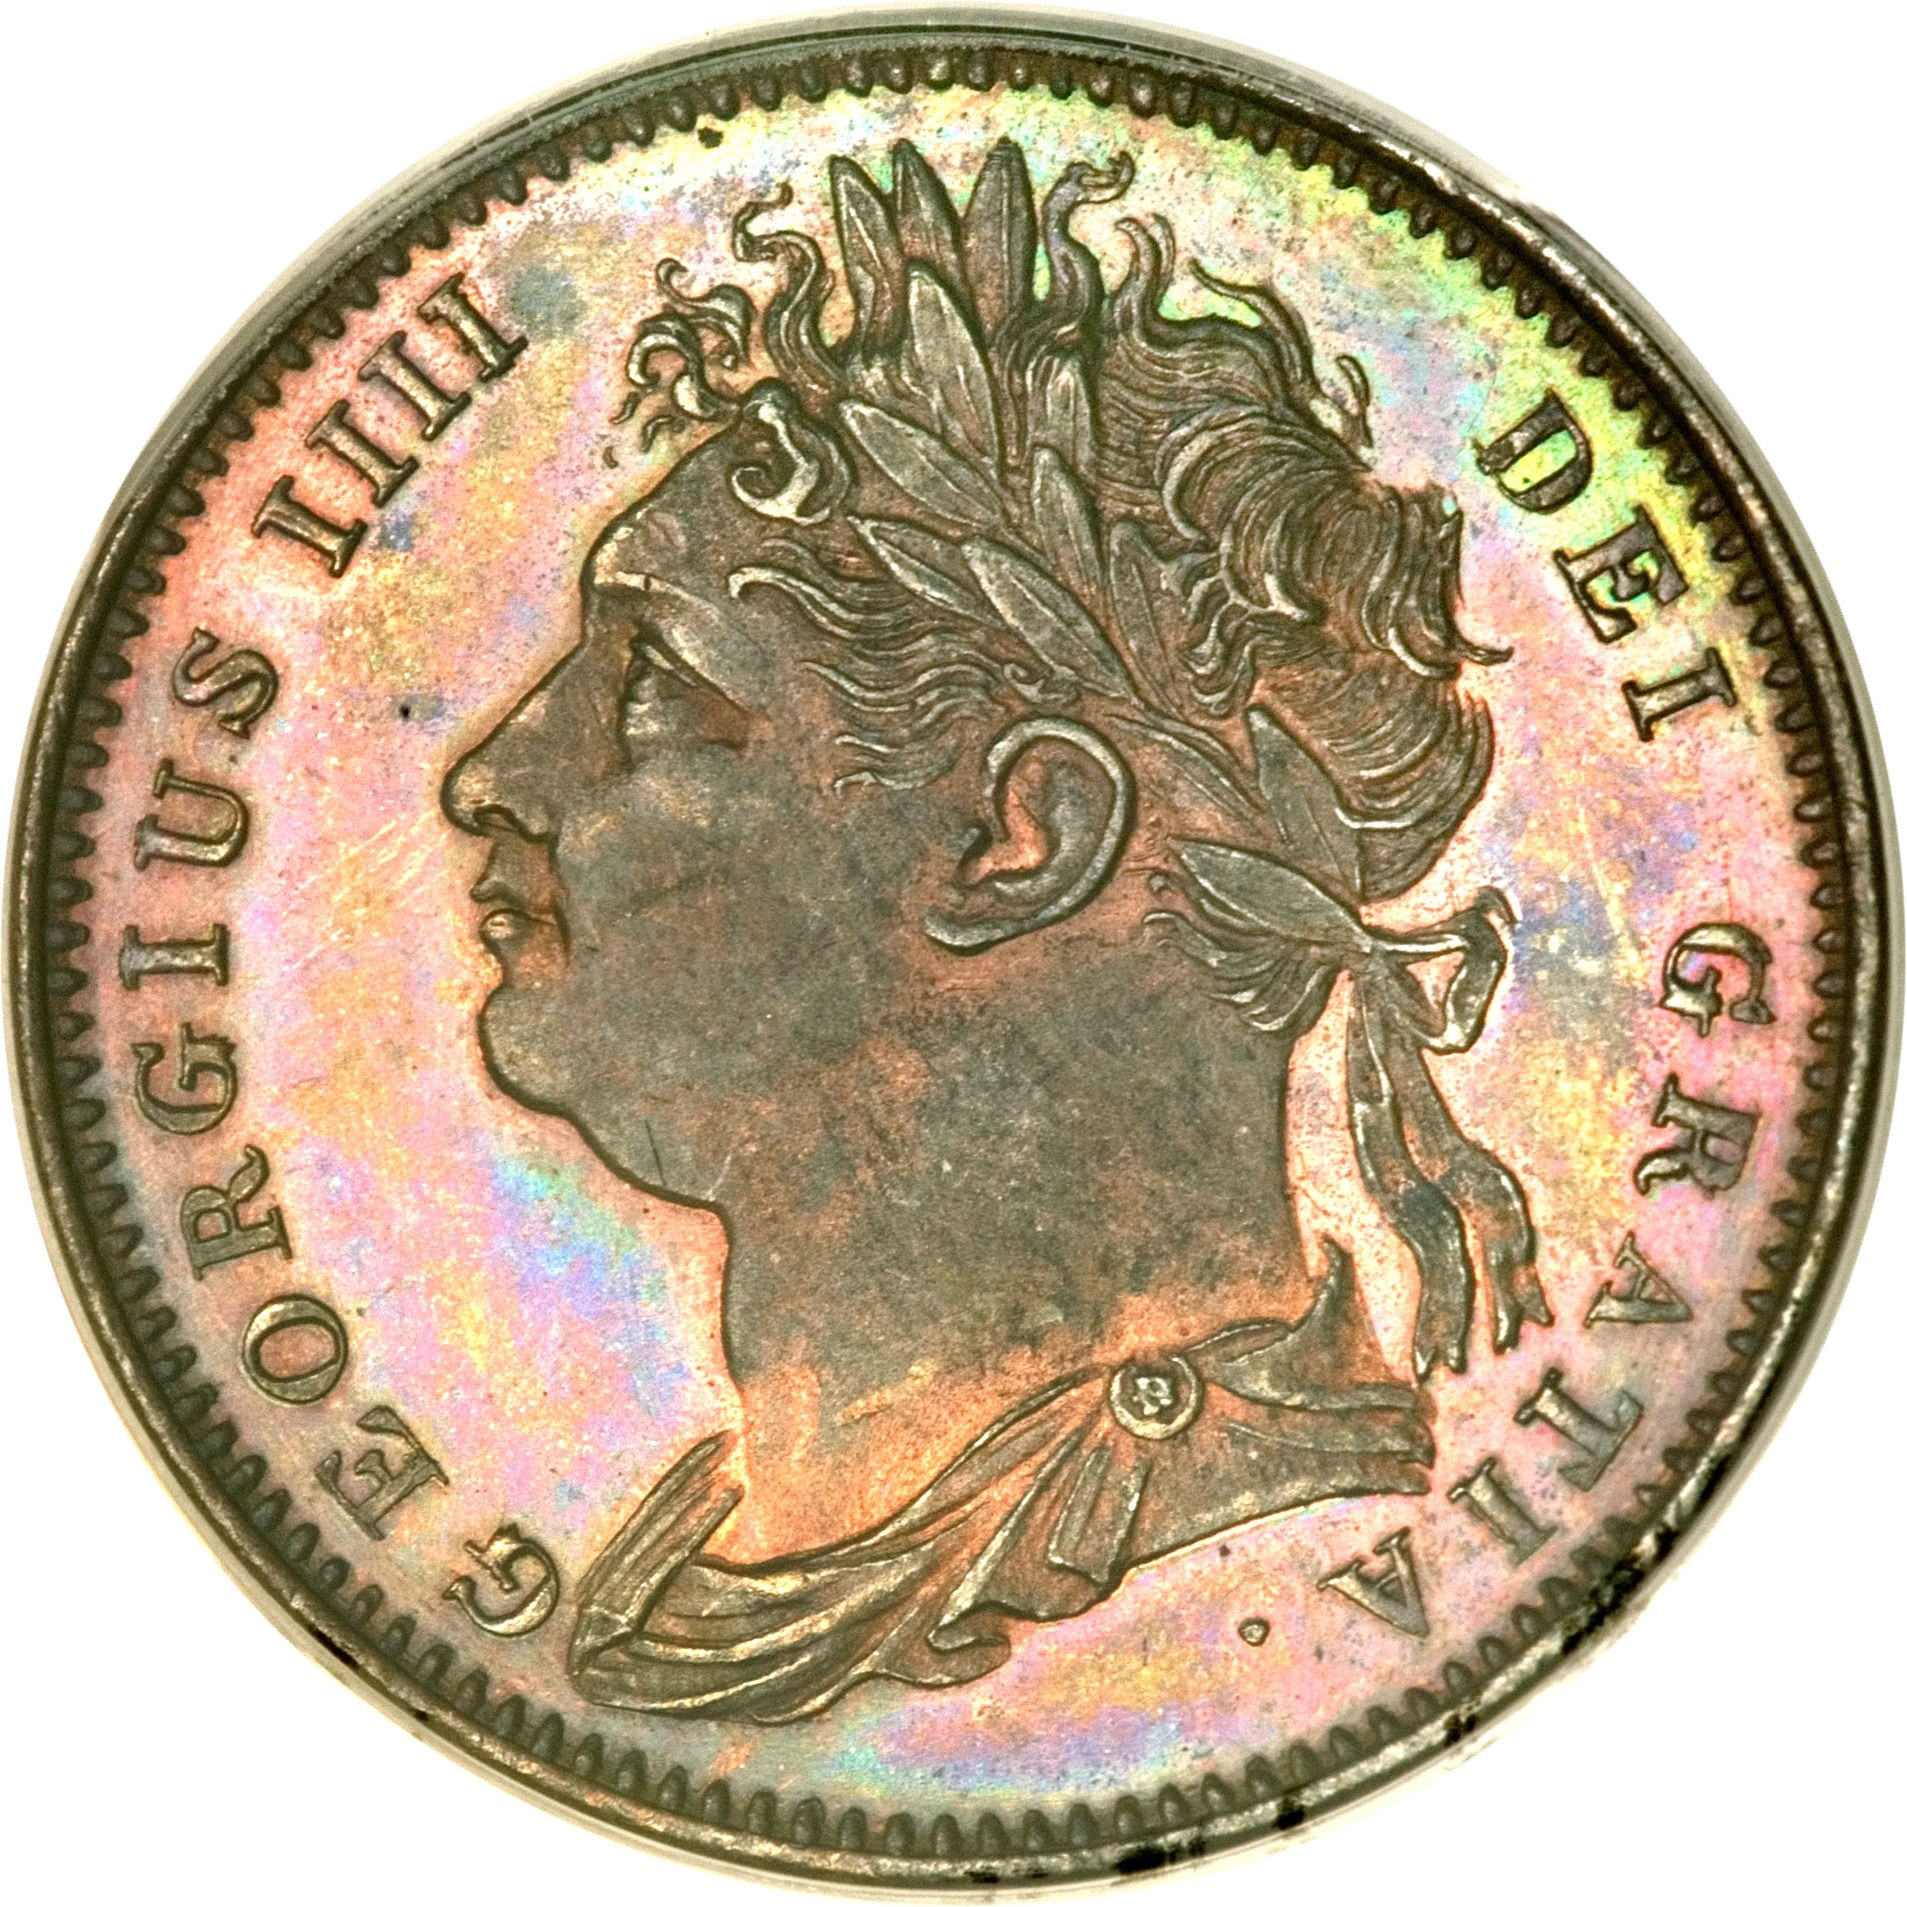 British 1 Farthing (1821-1826 George IV)